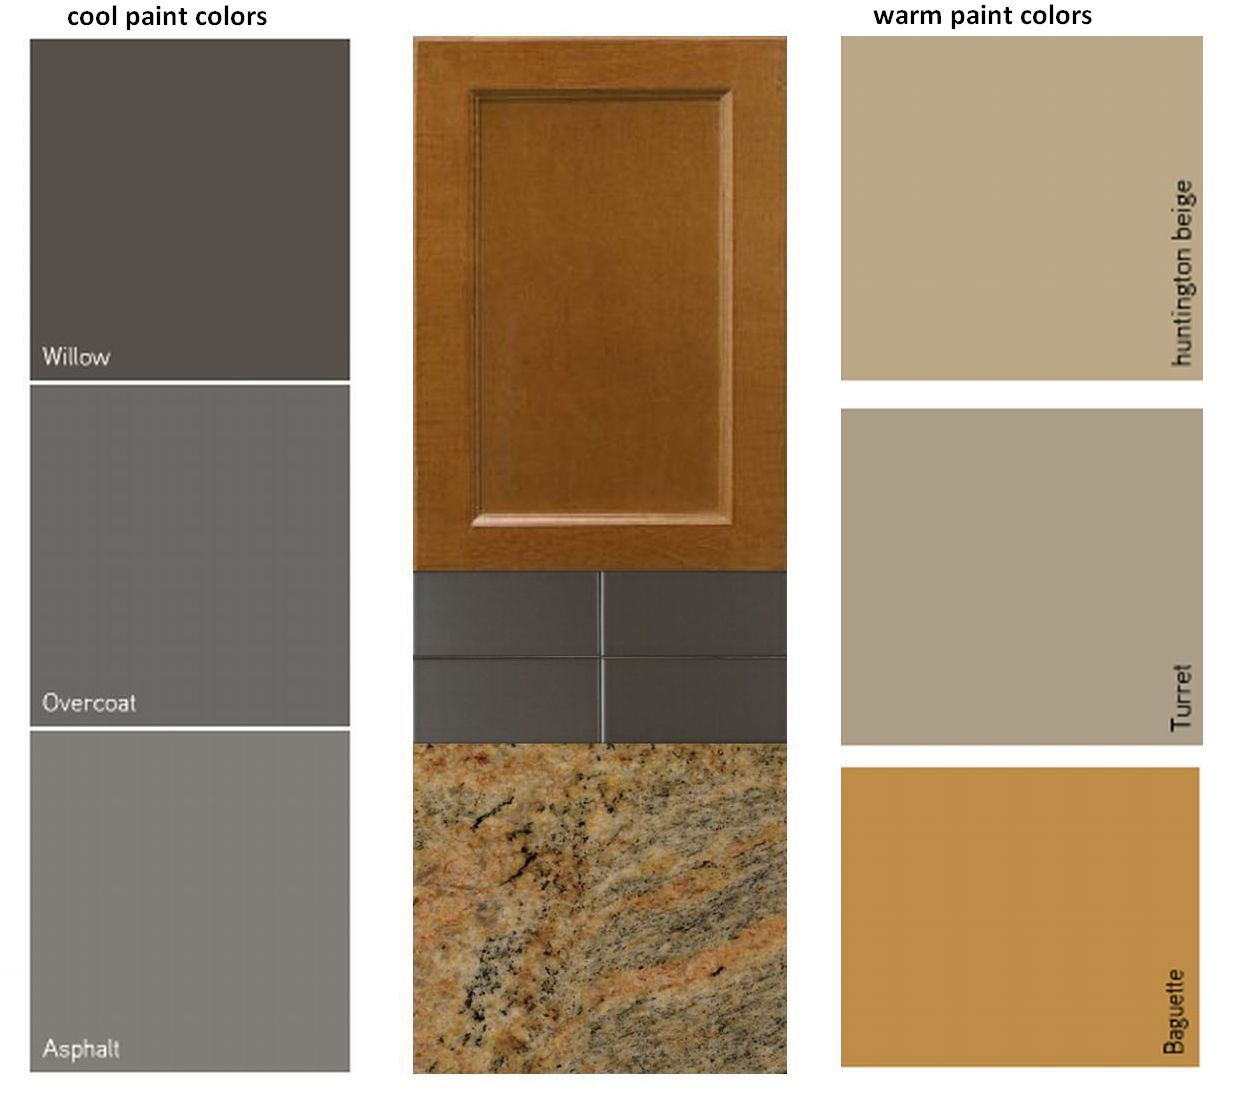 Carmen s corner warm or cool paint colors - Colors that go with brown ...